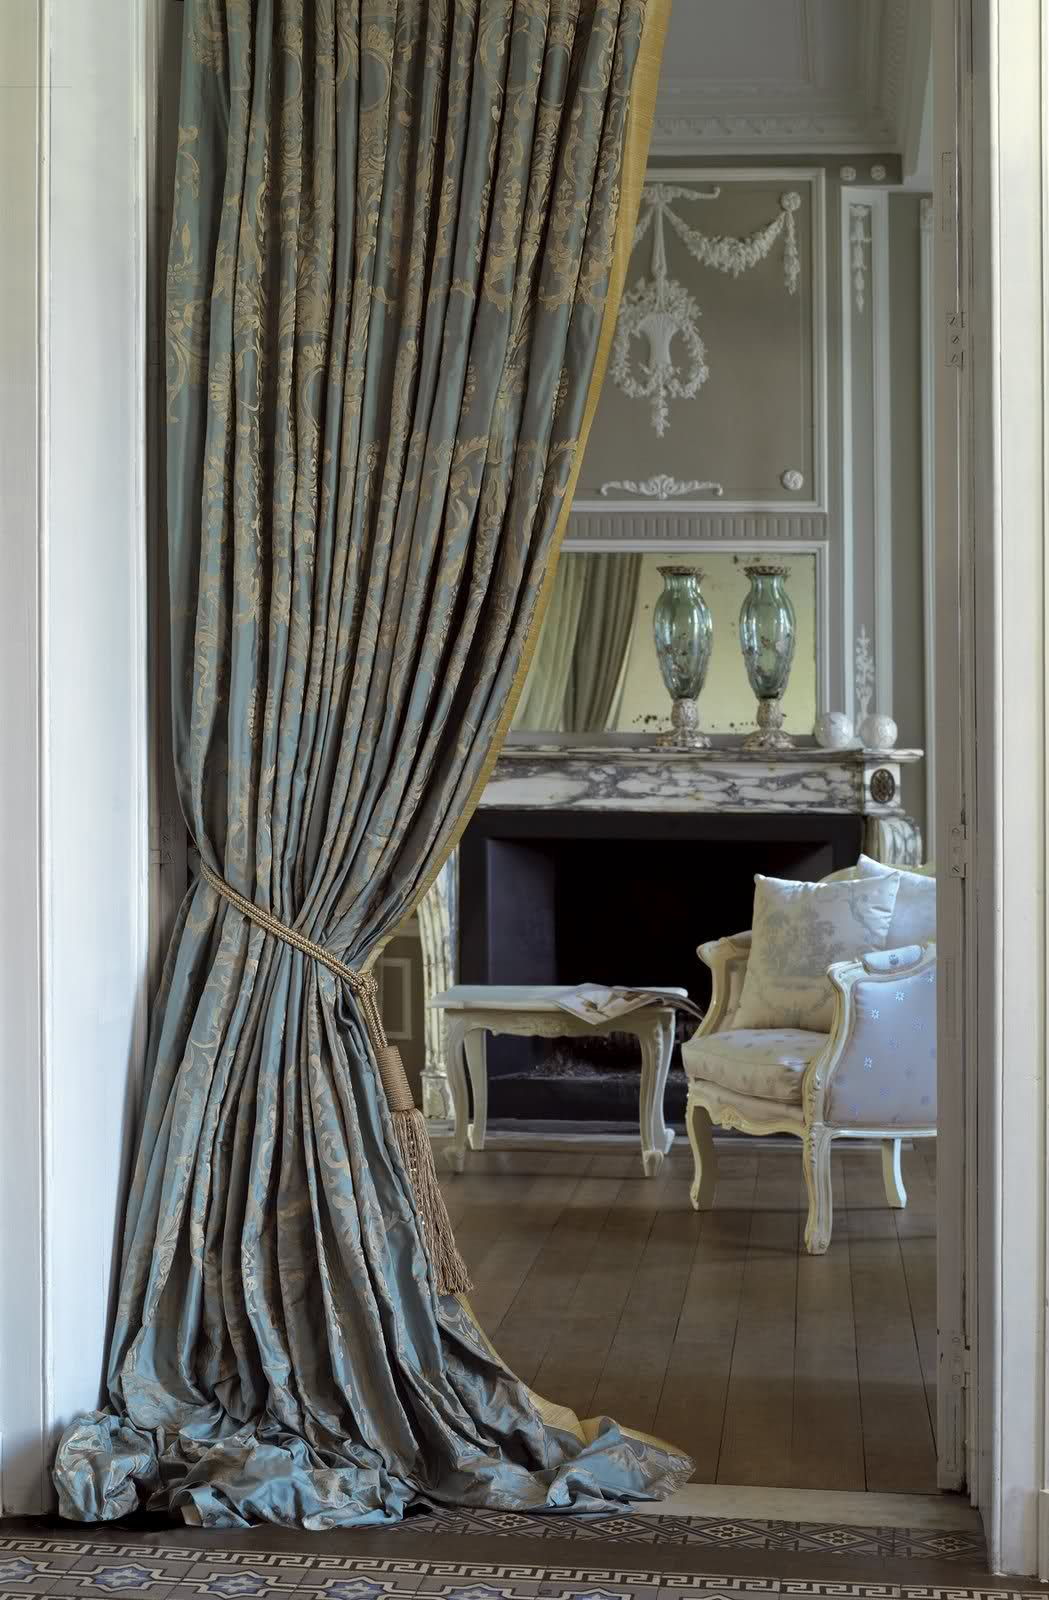 Drapery with puddle traditional style blue damask silk Curtains for wood paneled room